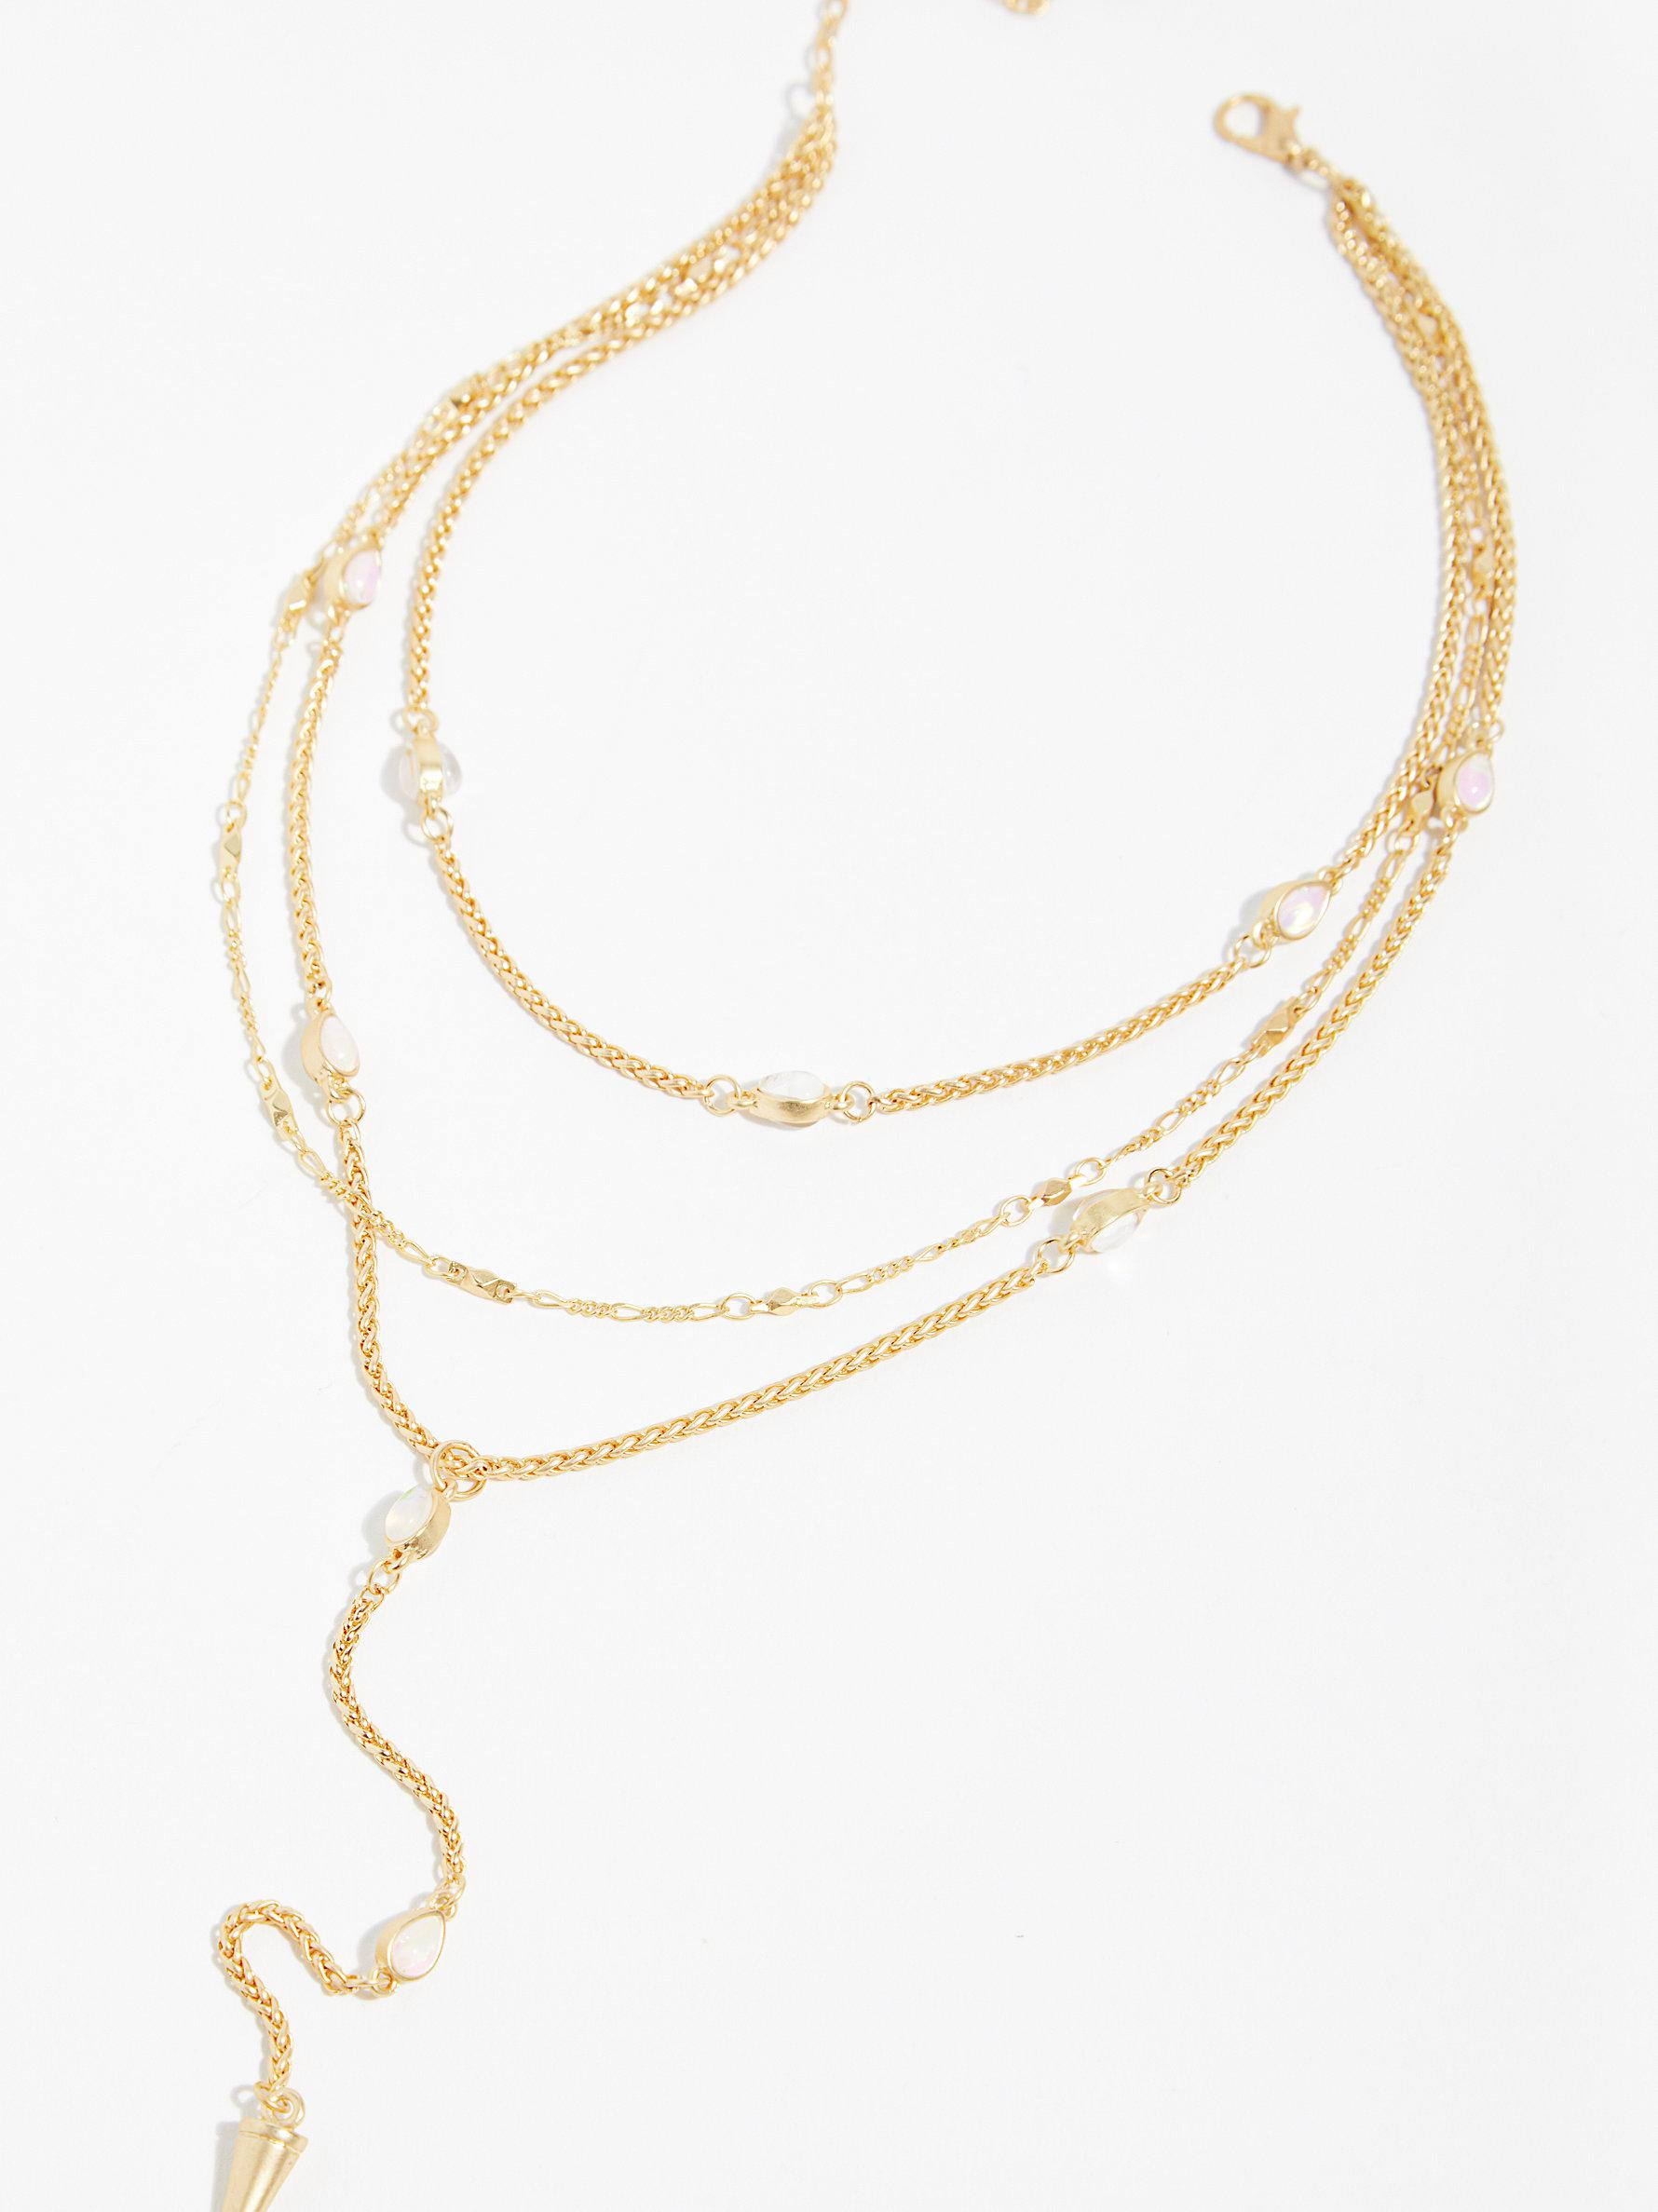 Free People Pretty Lover Delicate Bolo Necklace in Gold / Ivory (Metallic)